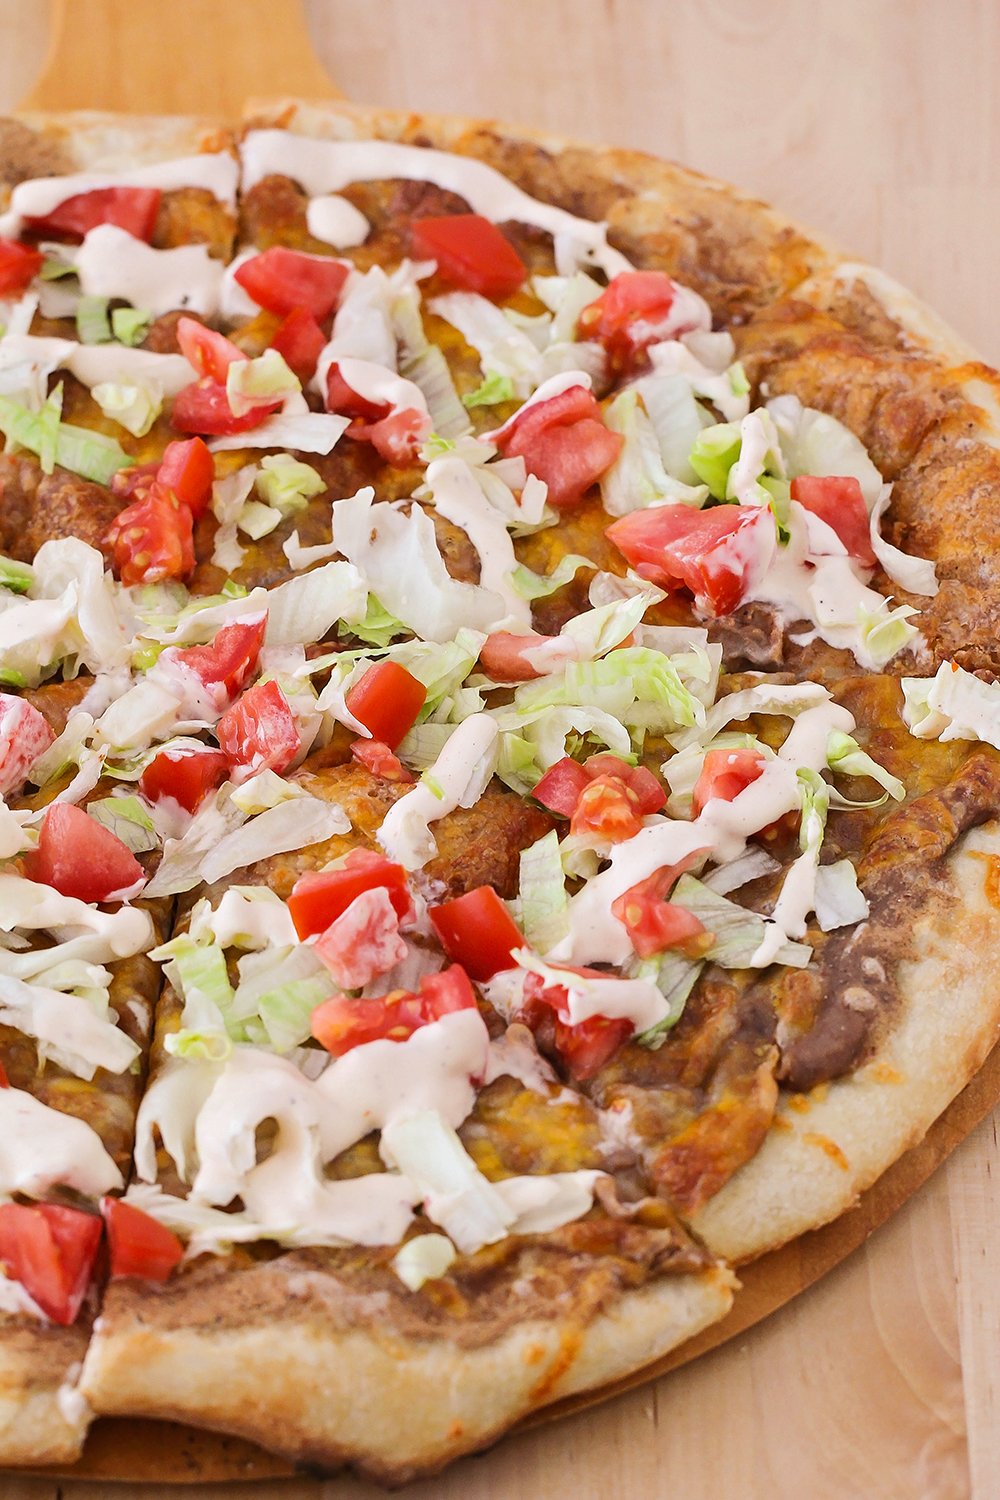 This cheesy tostada pizza is a delicious meatless meal that's super easy to make!